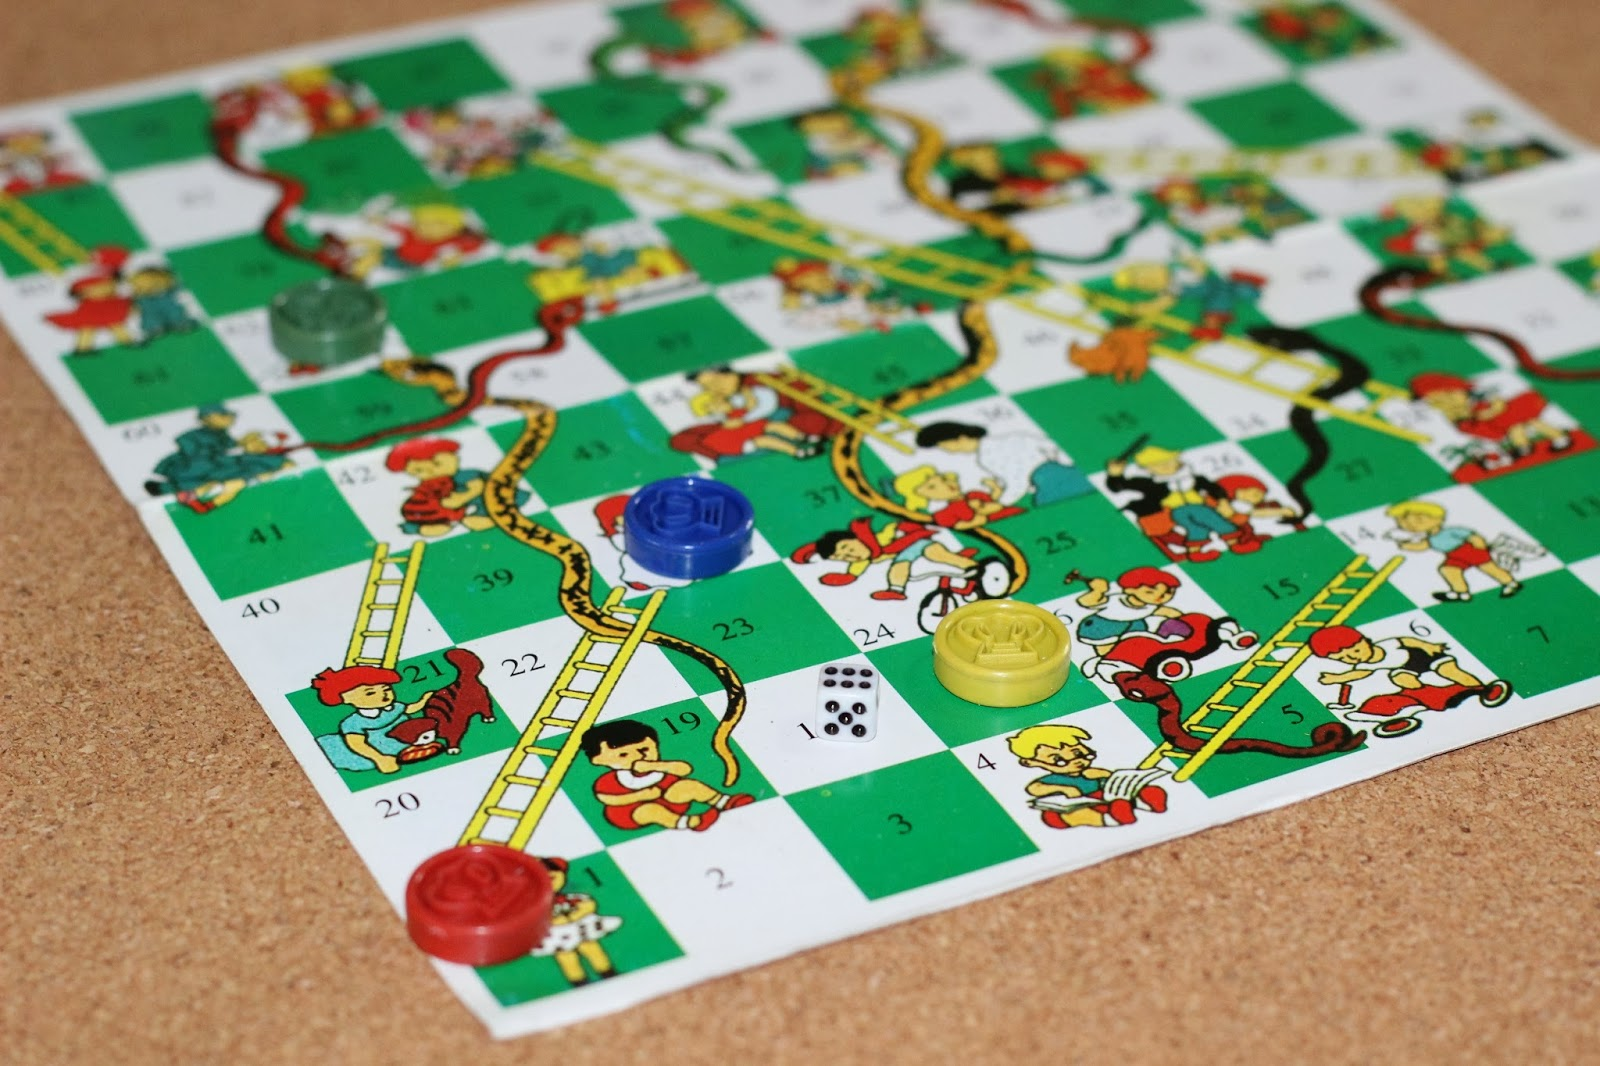 snake and ladder - How To Play 13 Malaysian '90s Childhood Games (PHOTOS)